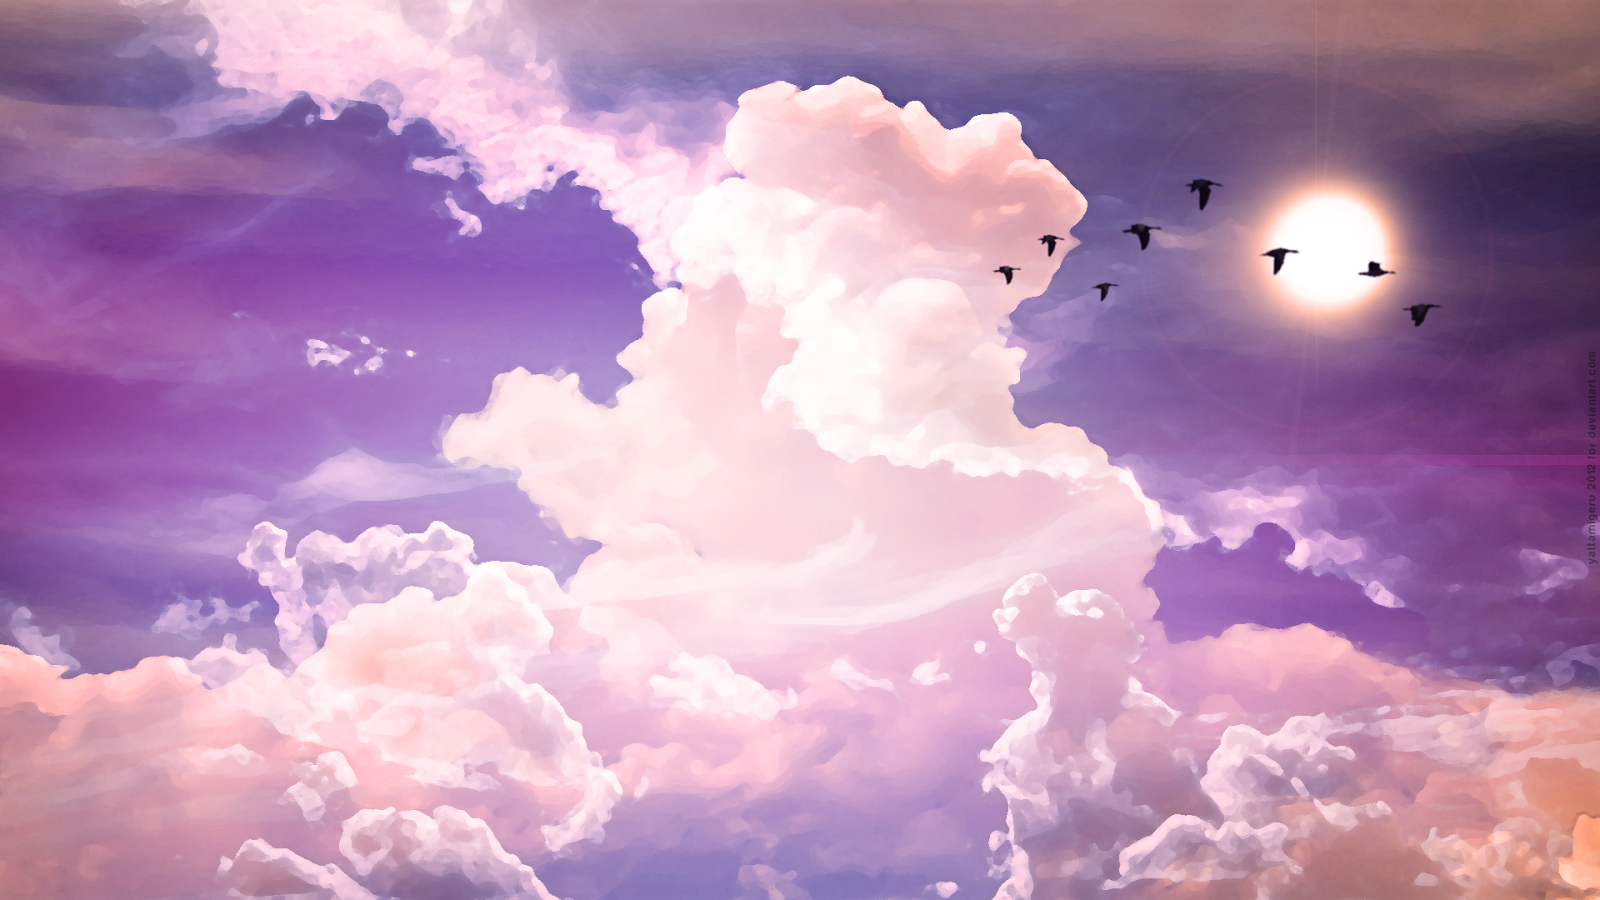 sky desktop wallpaper - photo #5